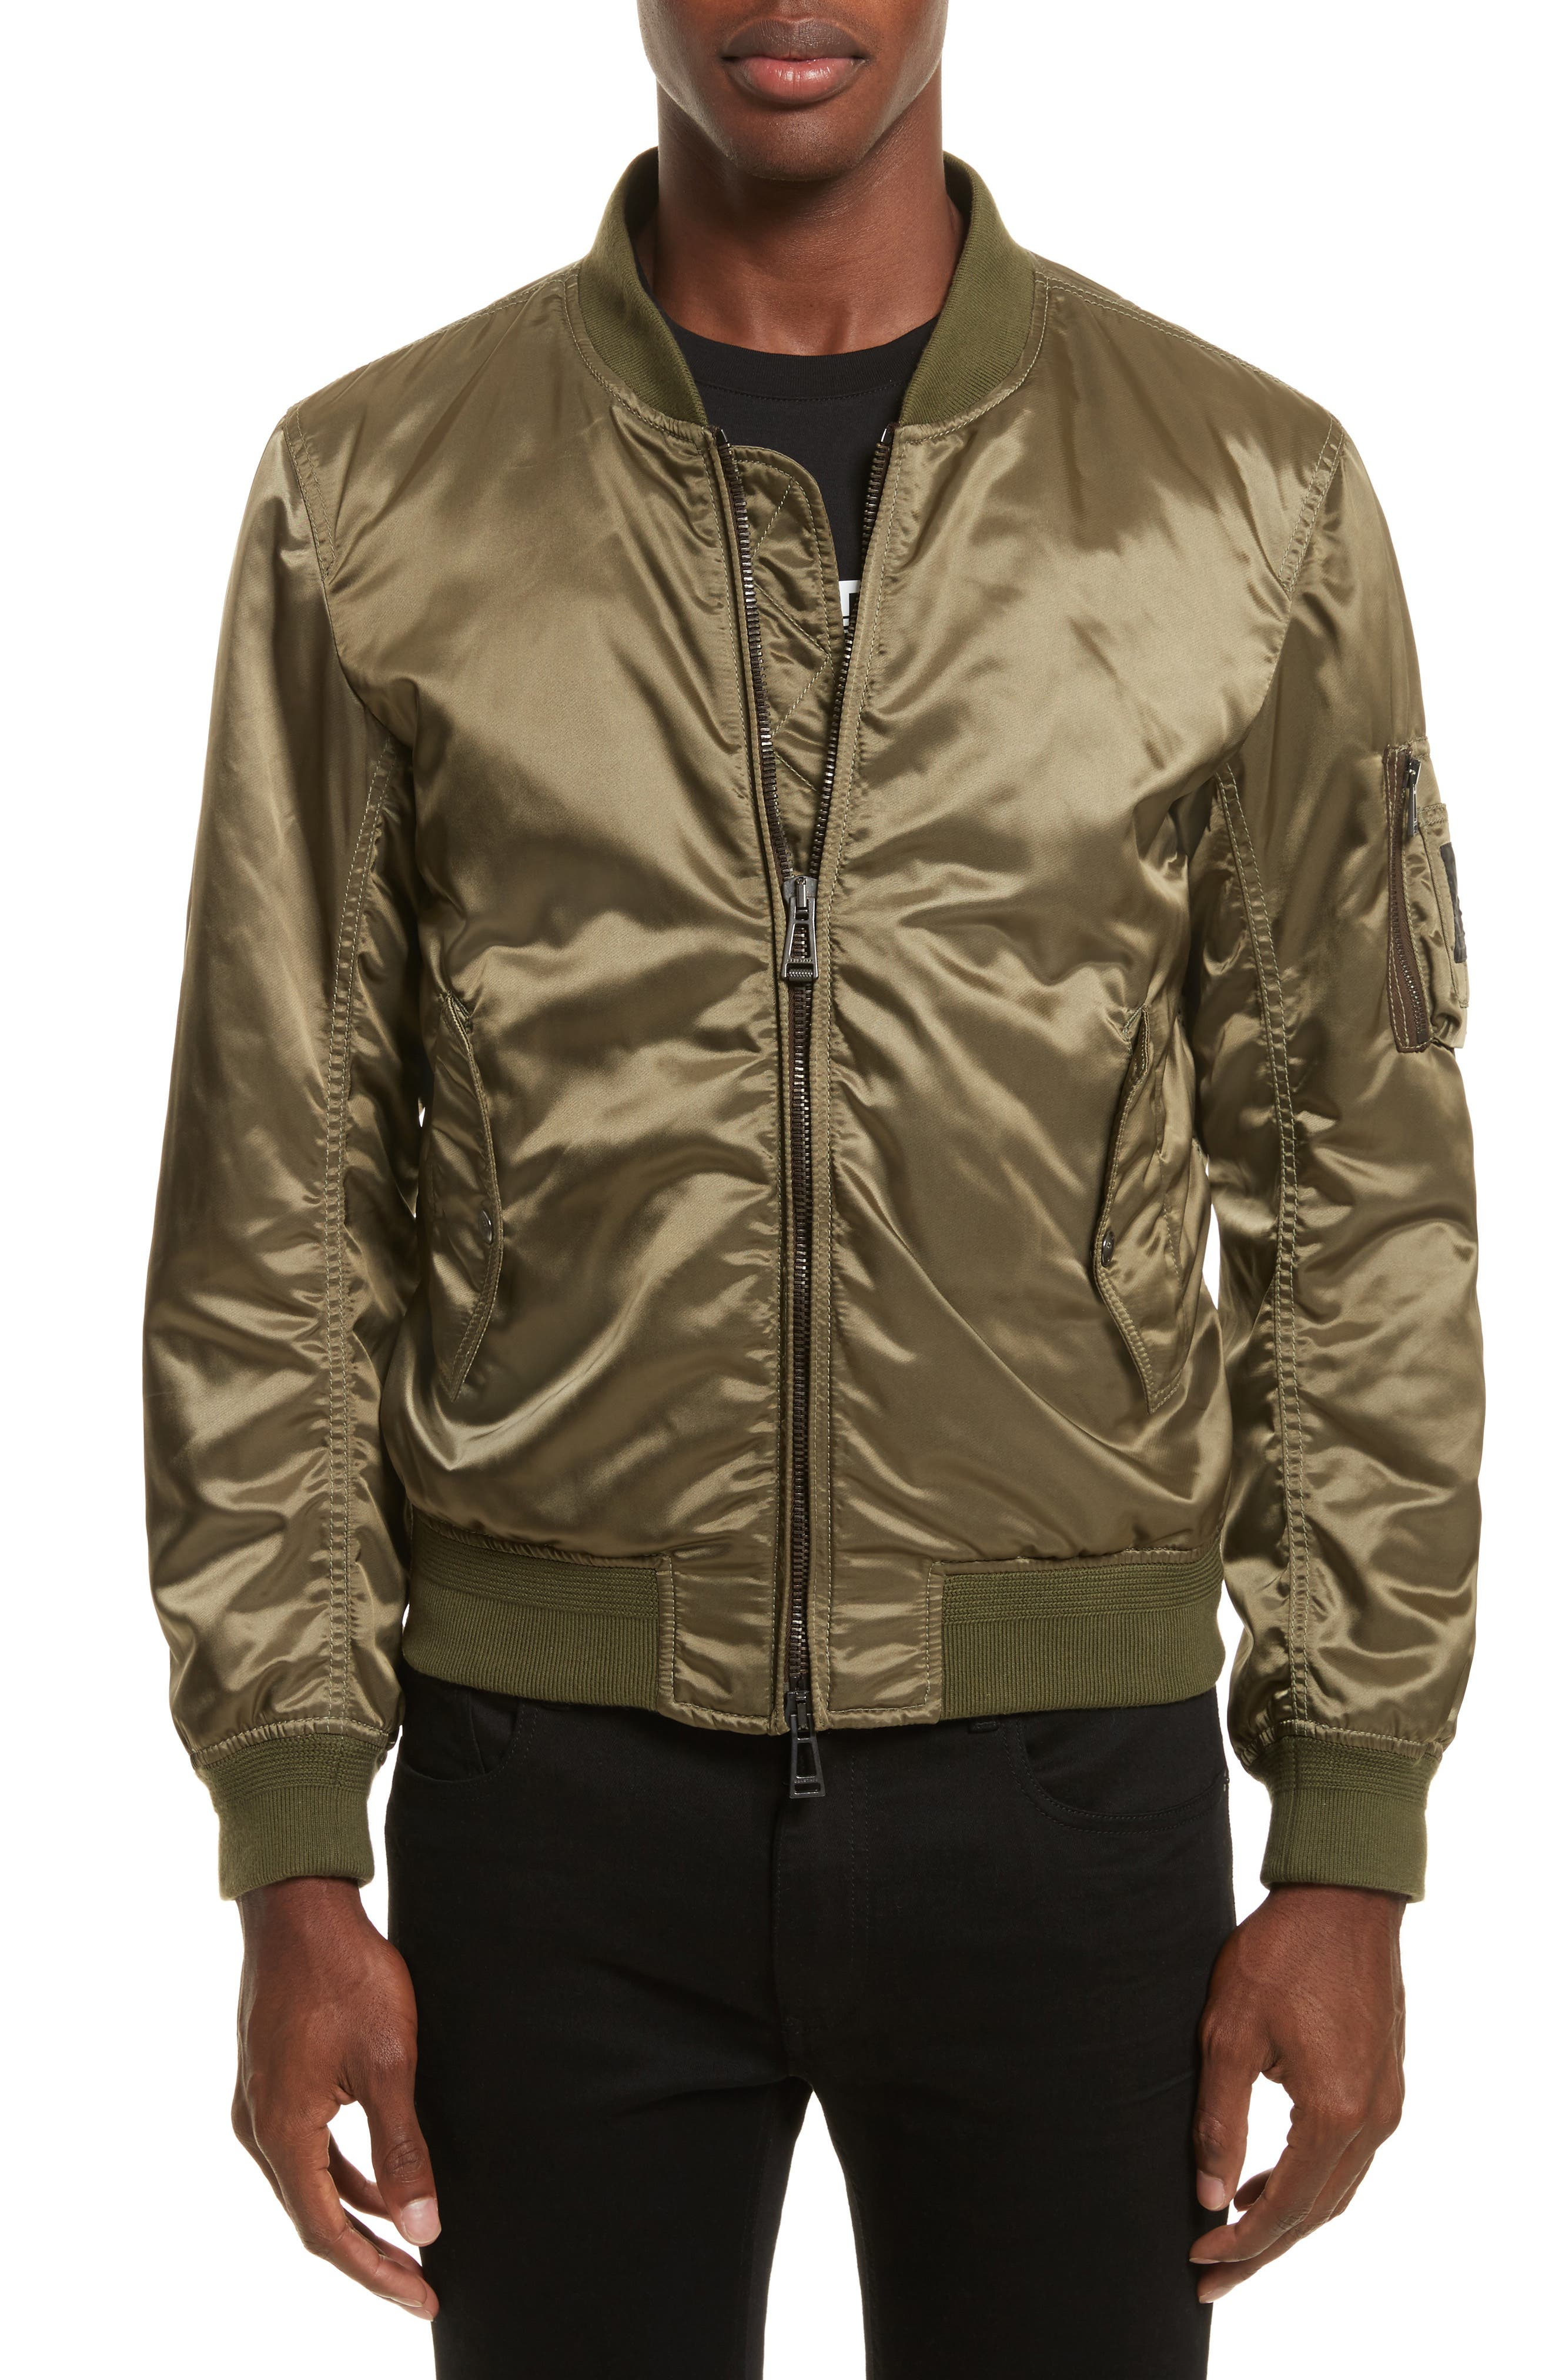 Washburn Bomber Jacket,                             Main thumbnail 1, color,                             330